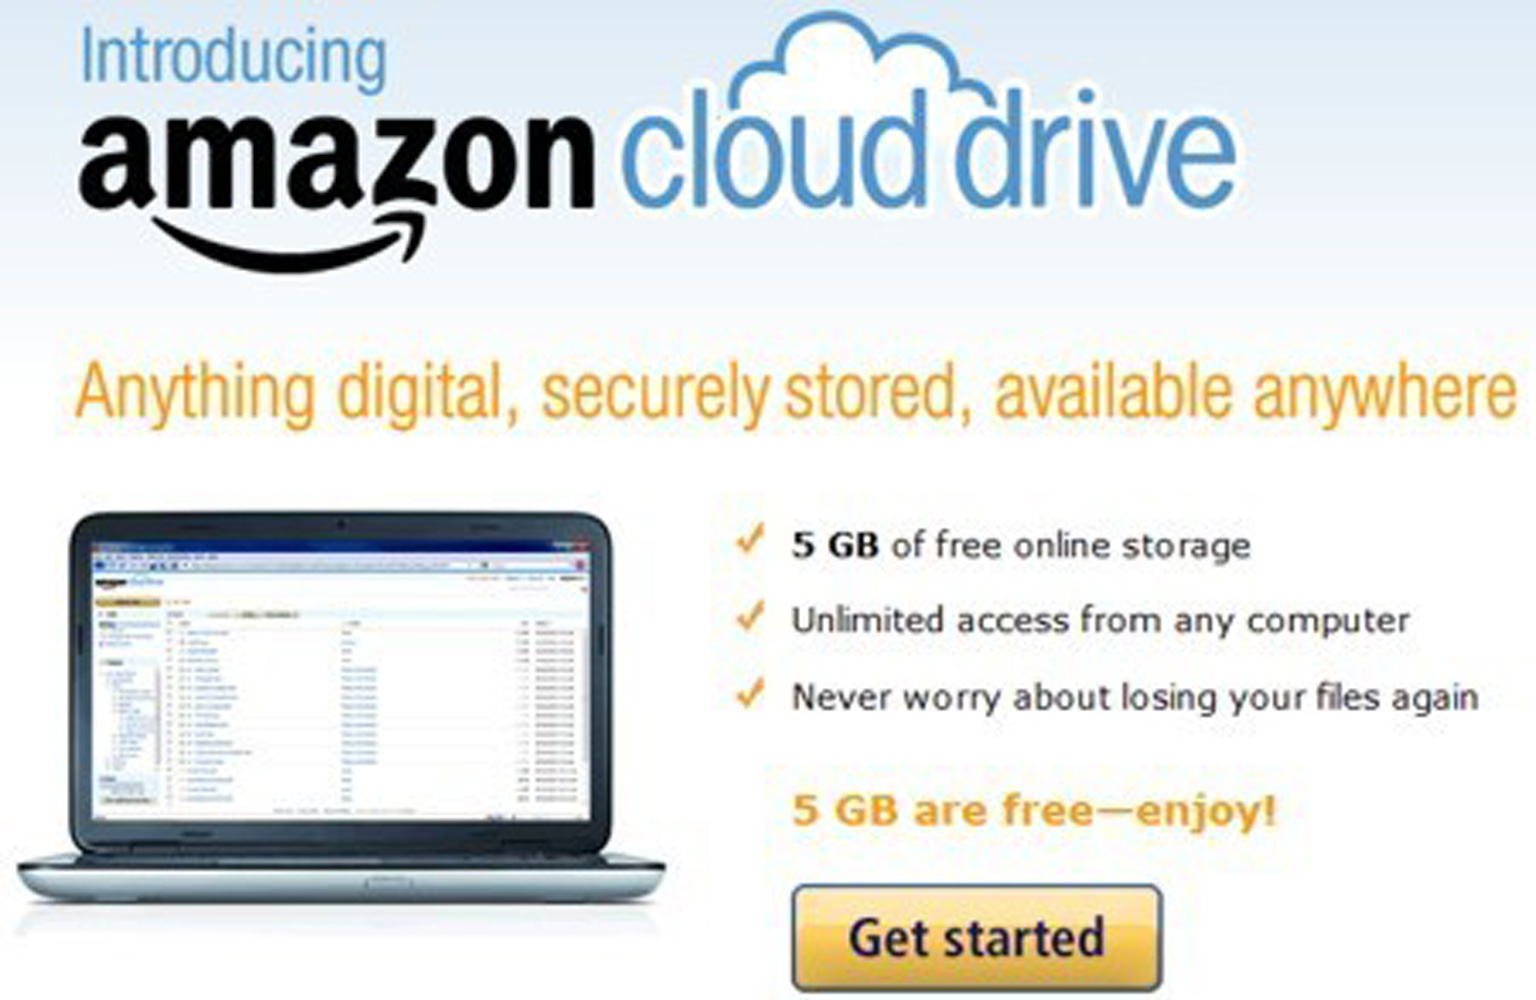 Amazon giver 5GB gratis lager